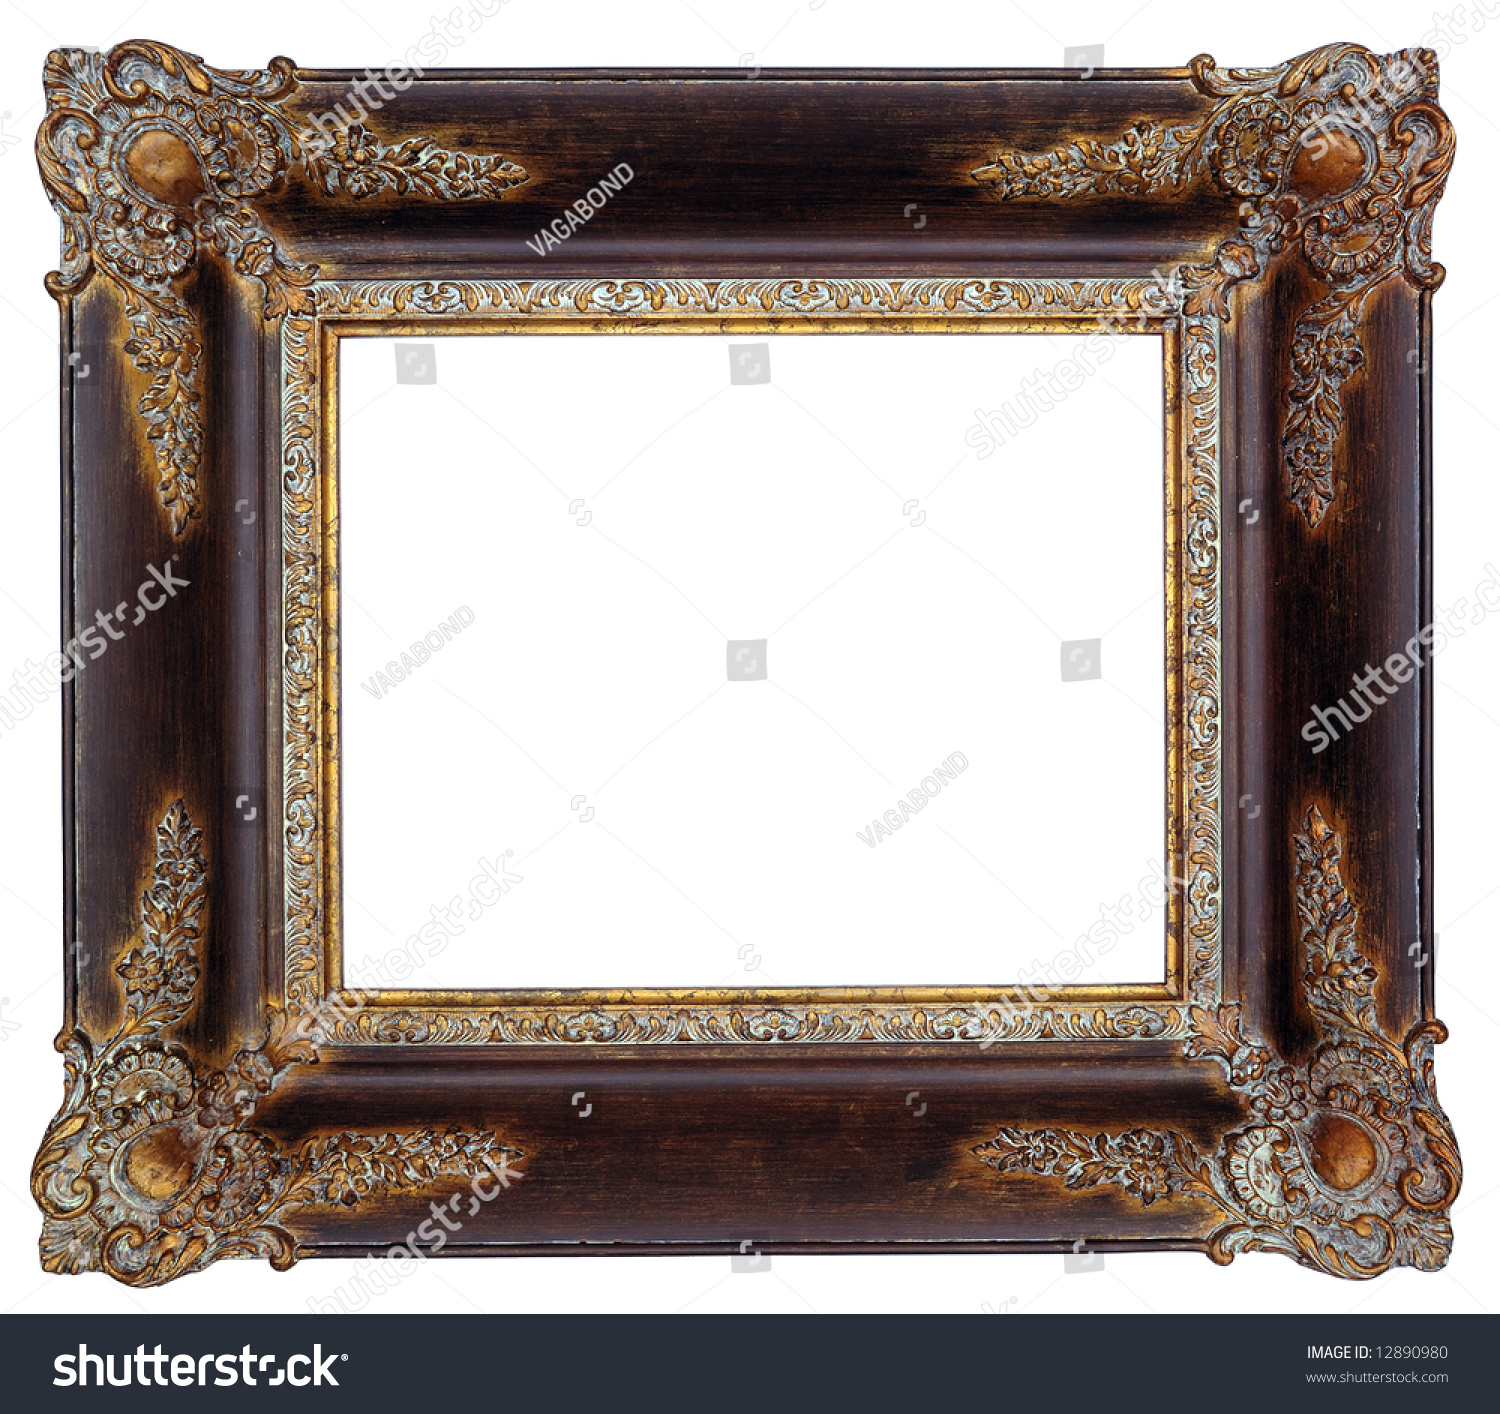 gold square antique picture frame cutout art craft preview save to a lightbox